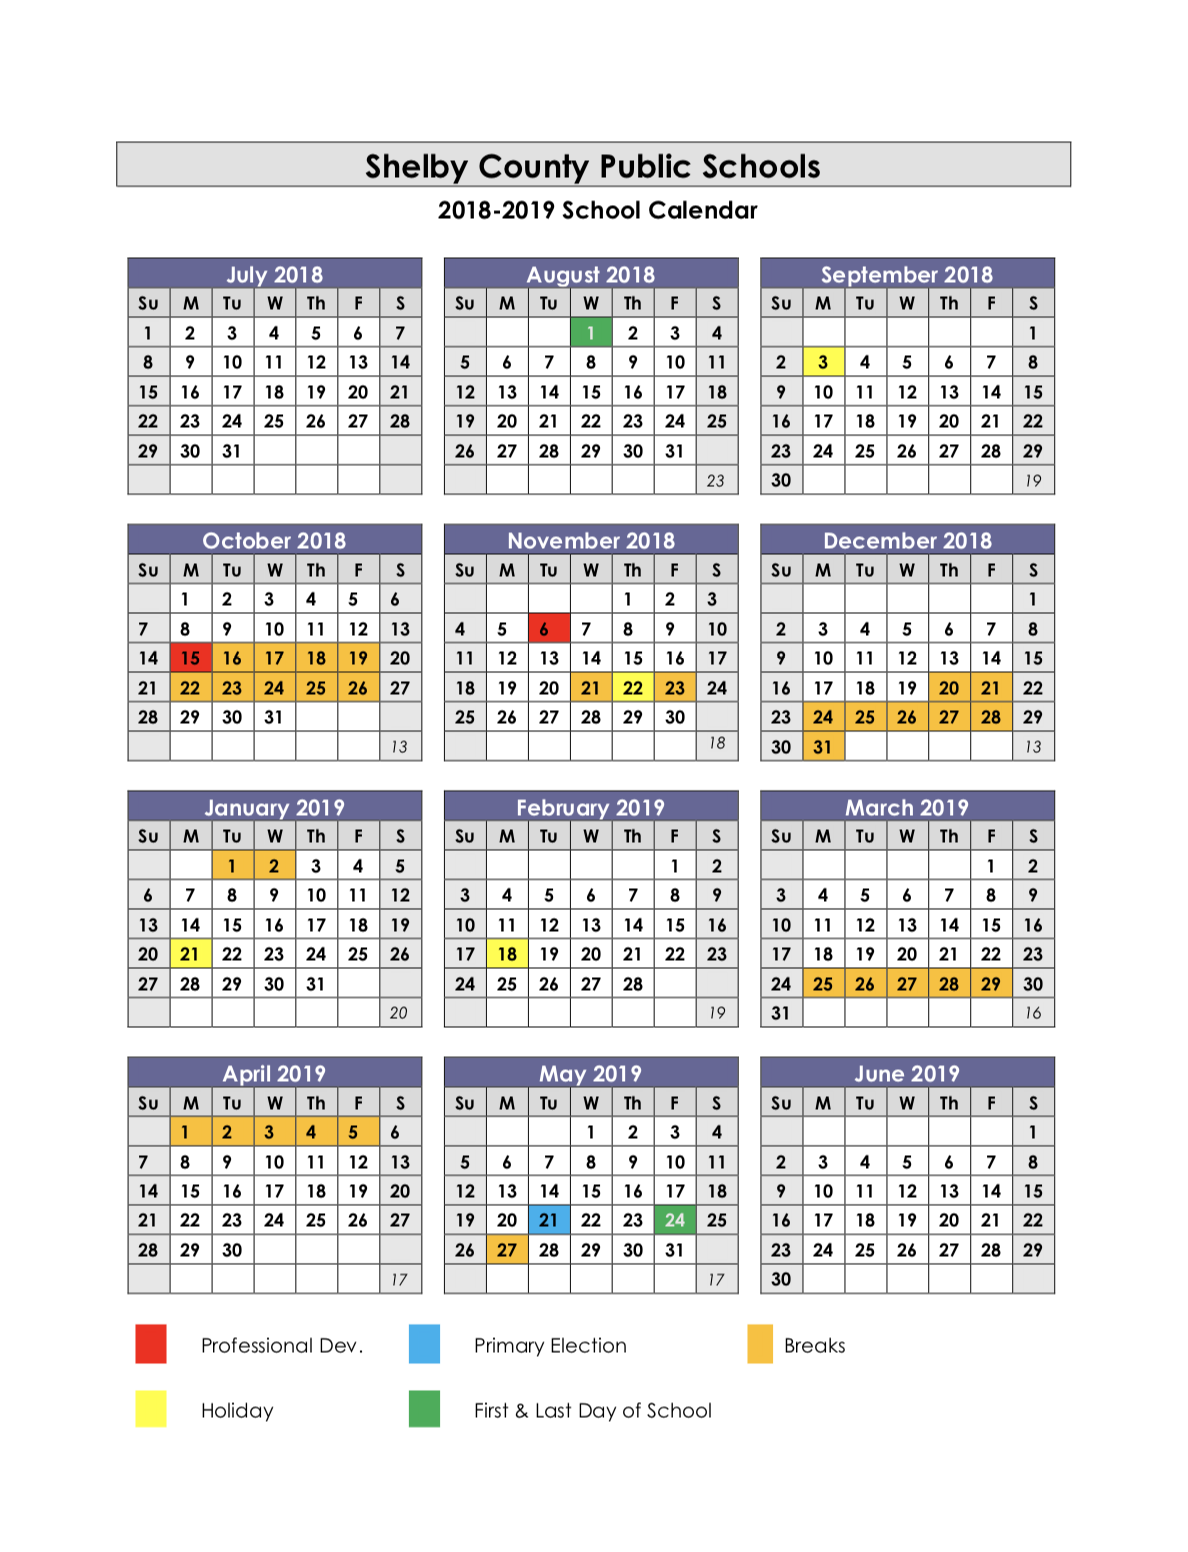 Ssc Year Calendar 2019 With School Calendars 2018